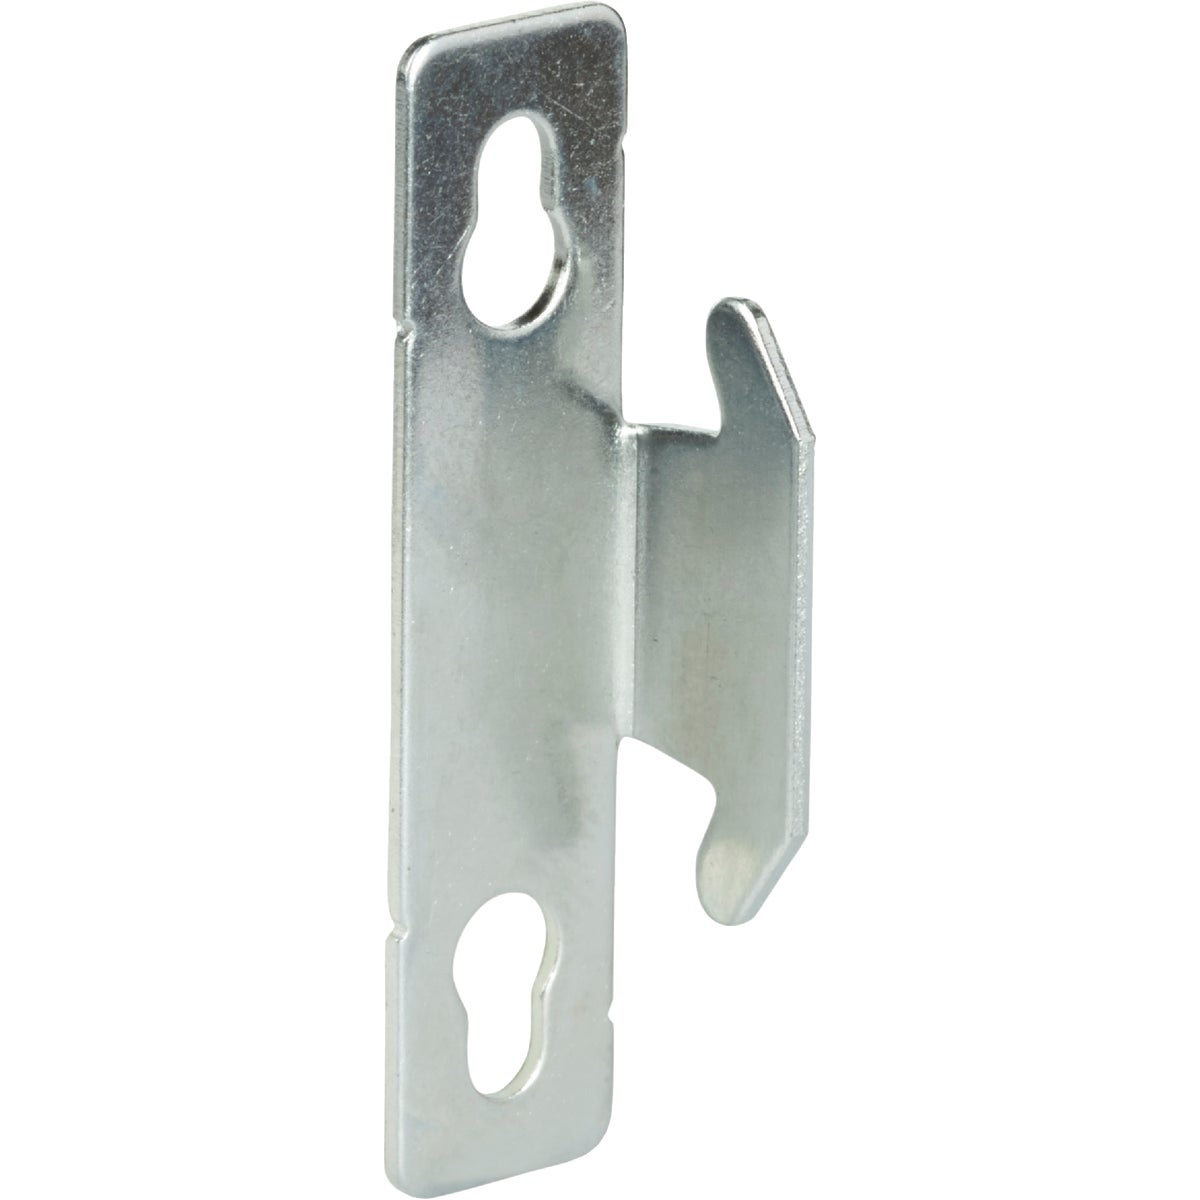 SNGL CURTAIN ROD BRACKET